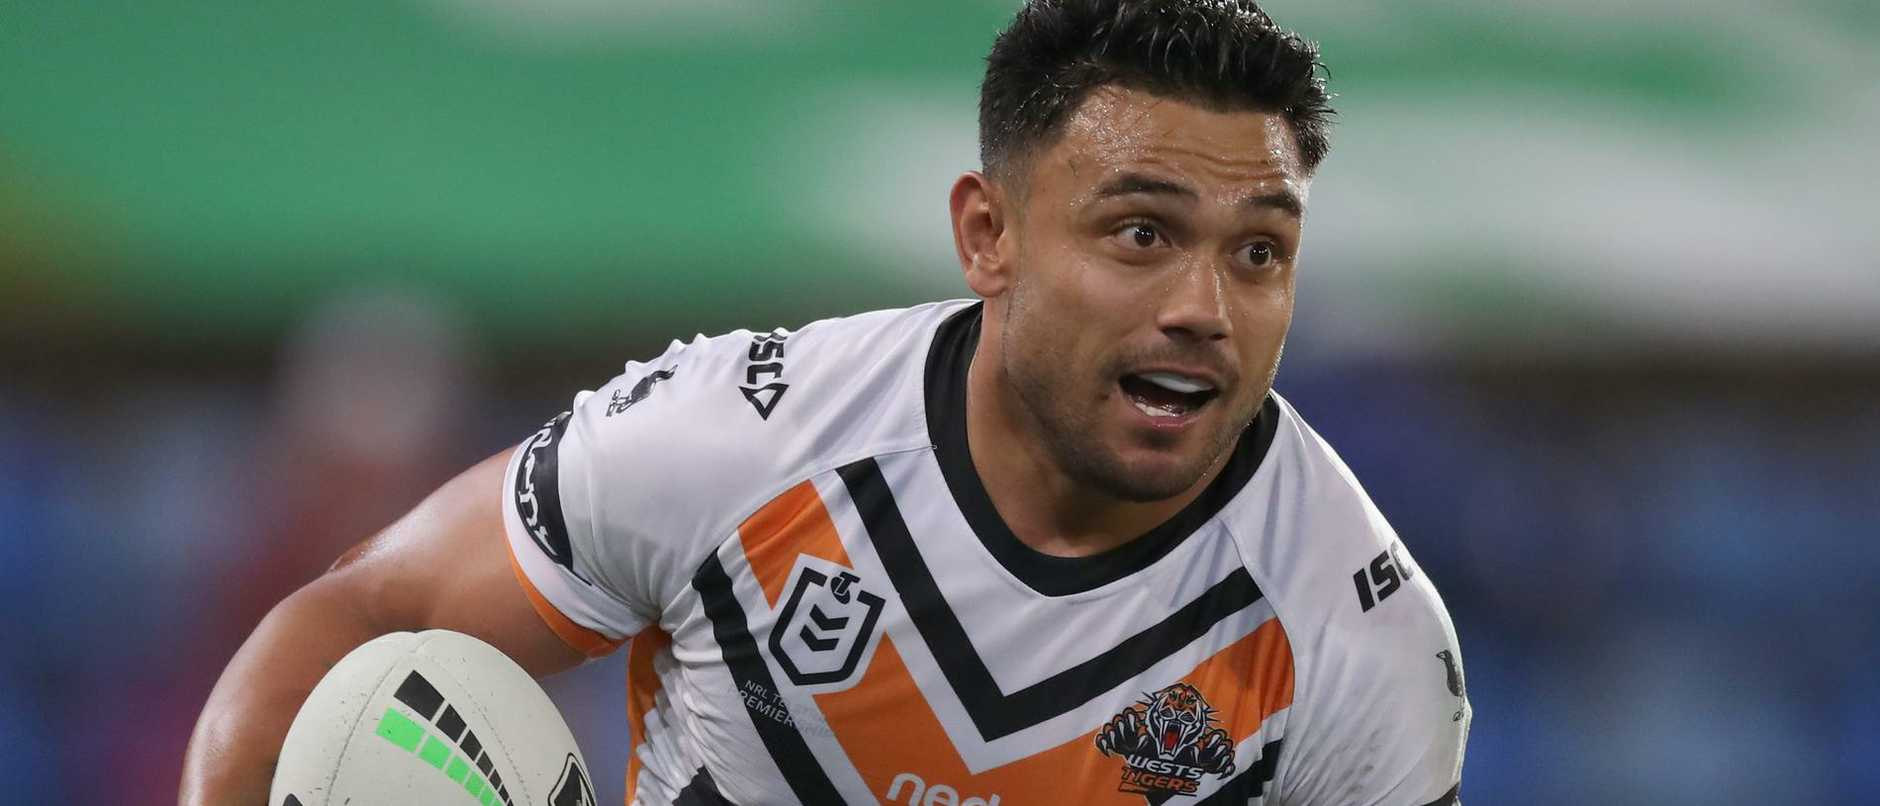 NRL Rd 13 - Knights v Tigers